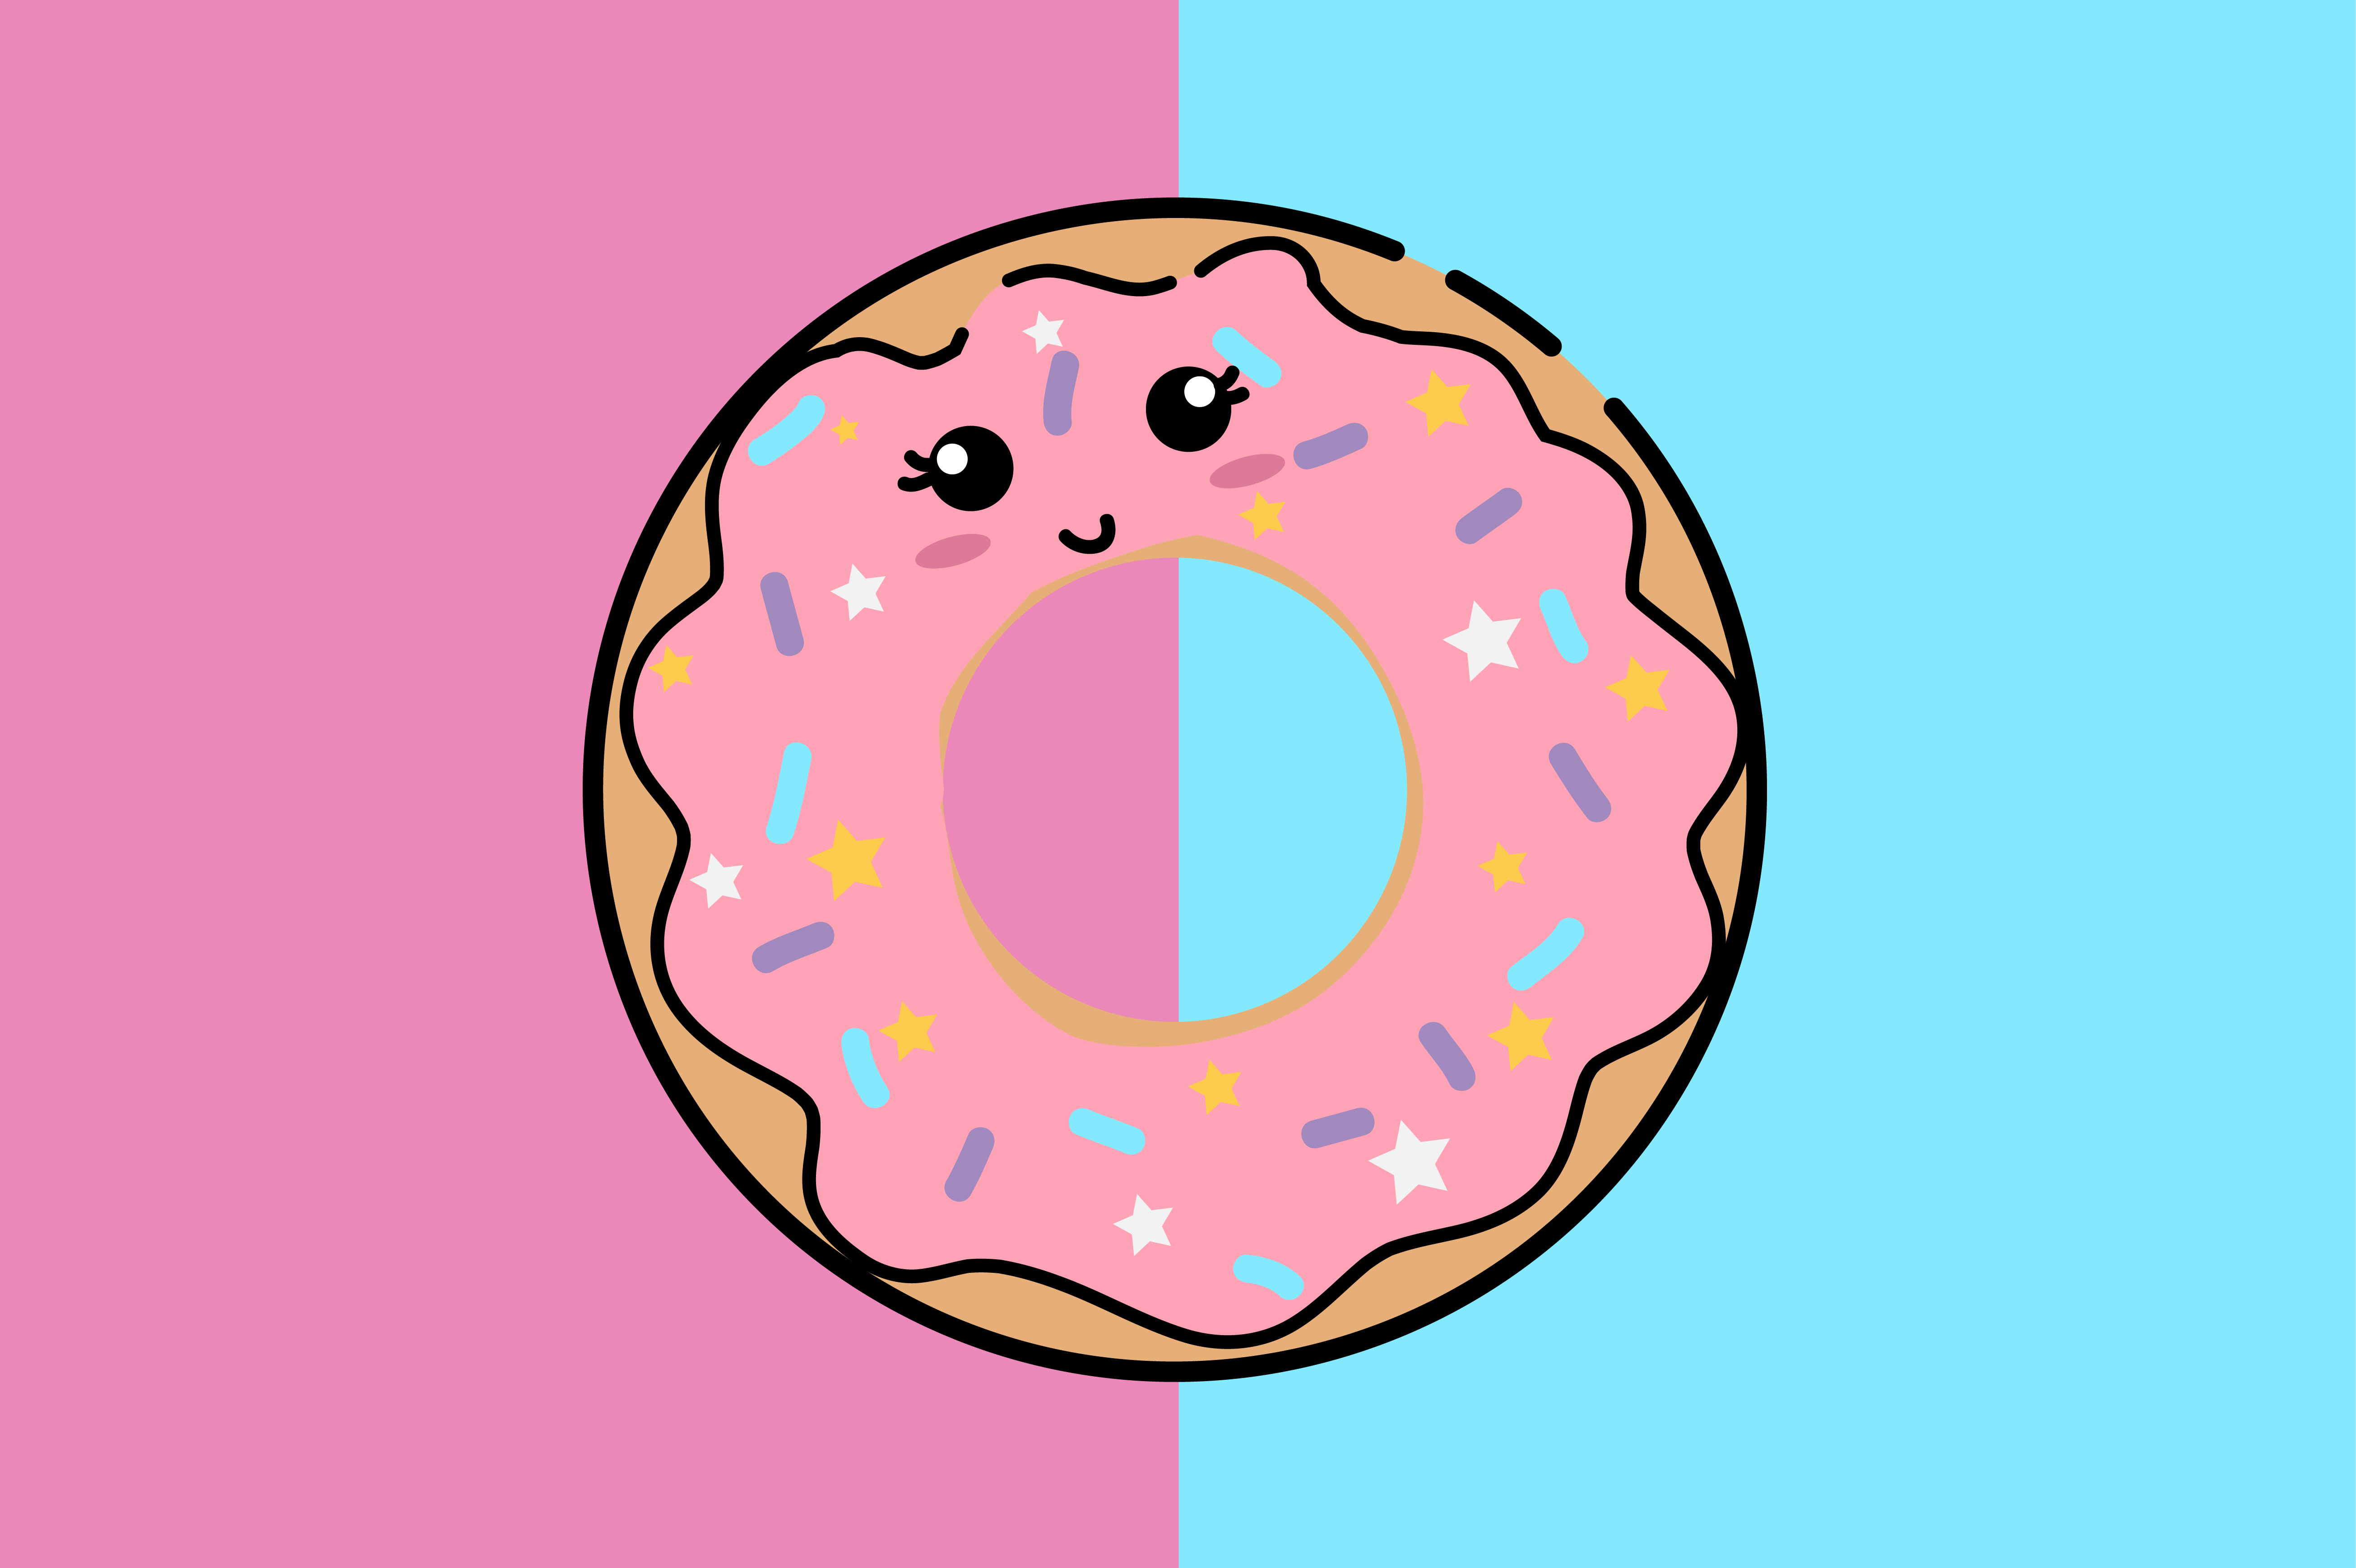 Download Free Pink Donut Kawaii Cute Illustration Graphic By Purplebubble for Cricut Explore, Silhouette and other cutting machines.